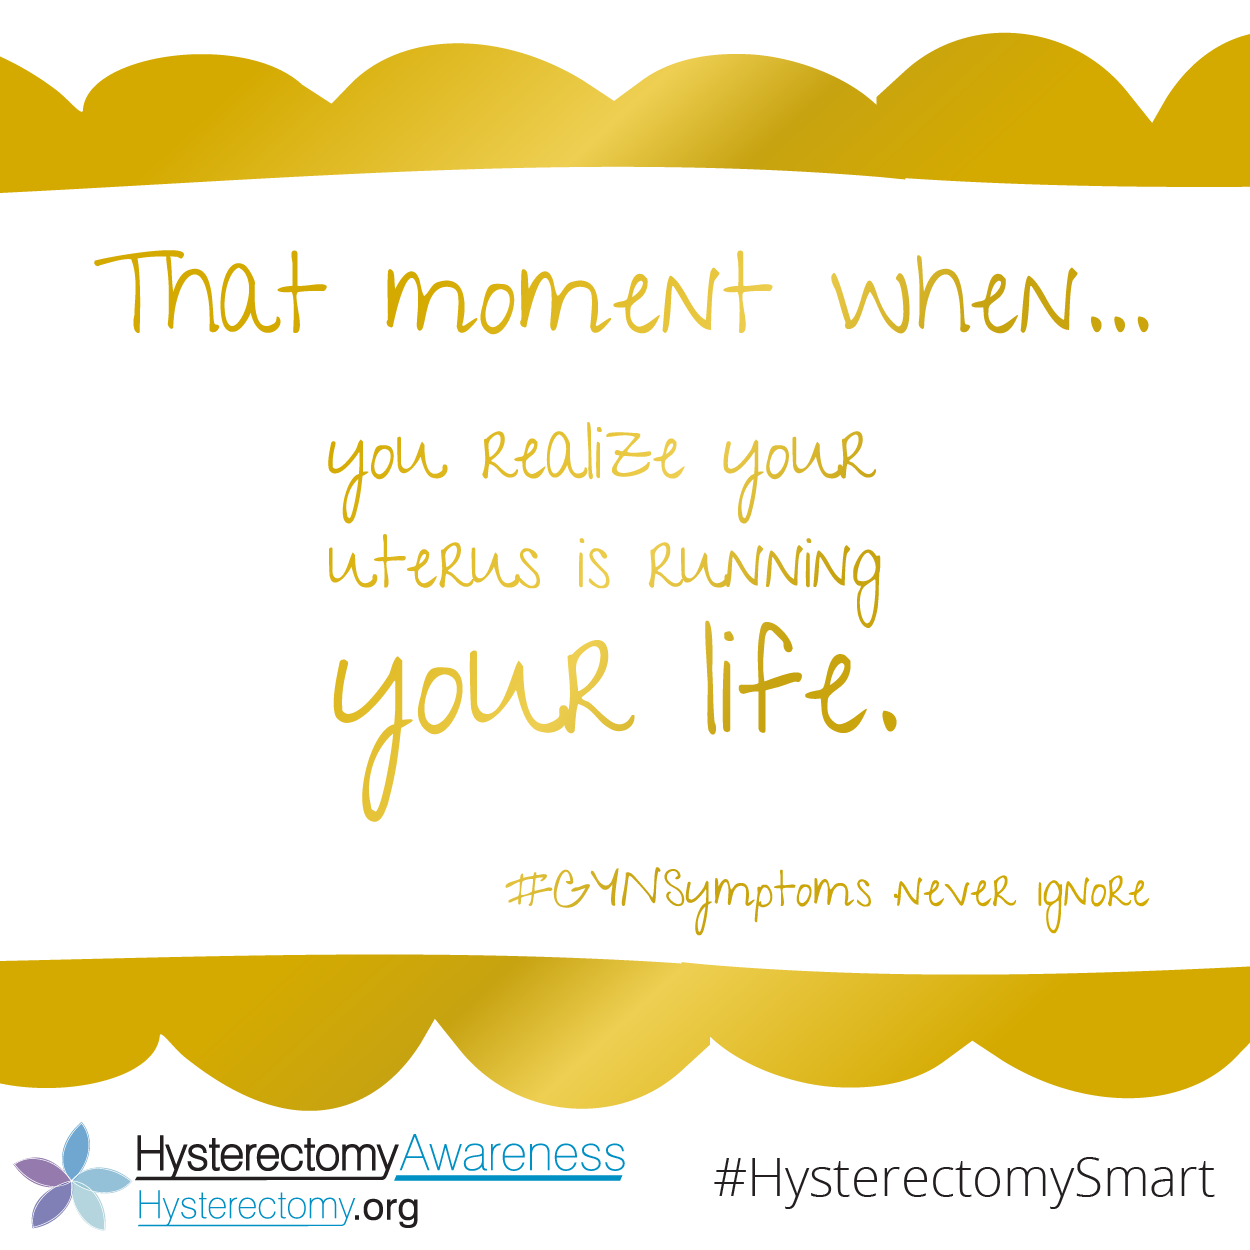 The moment you realize your uterus is running your life. #GYNSymptoms never ignore.